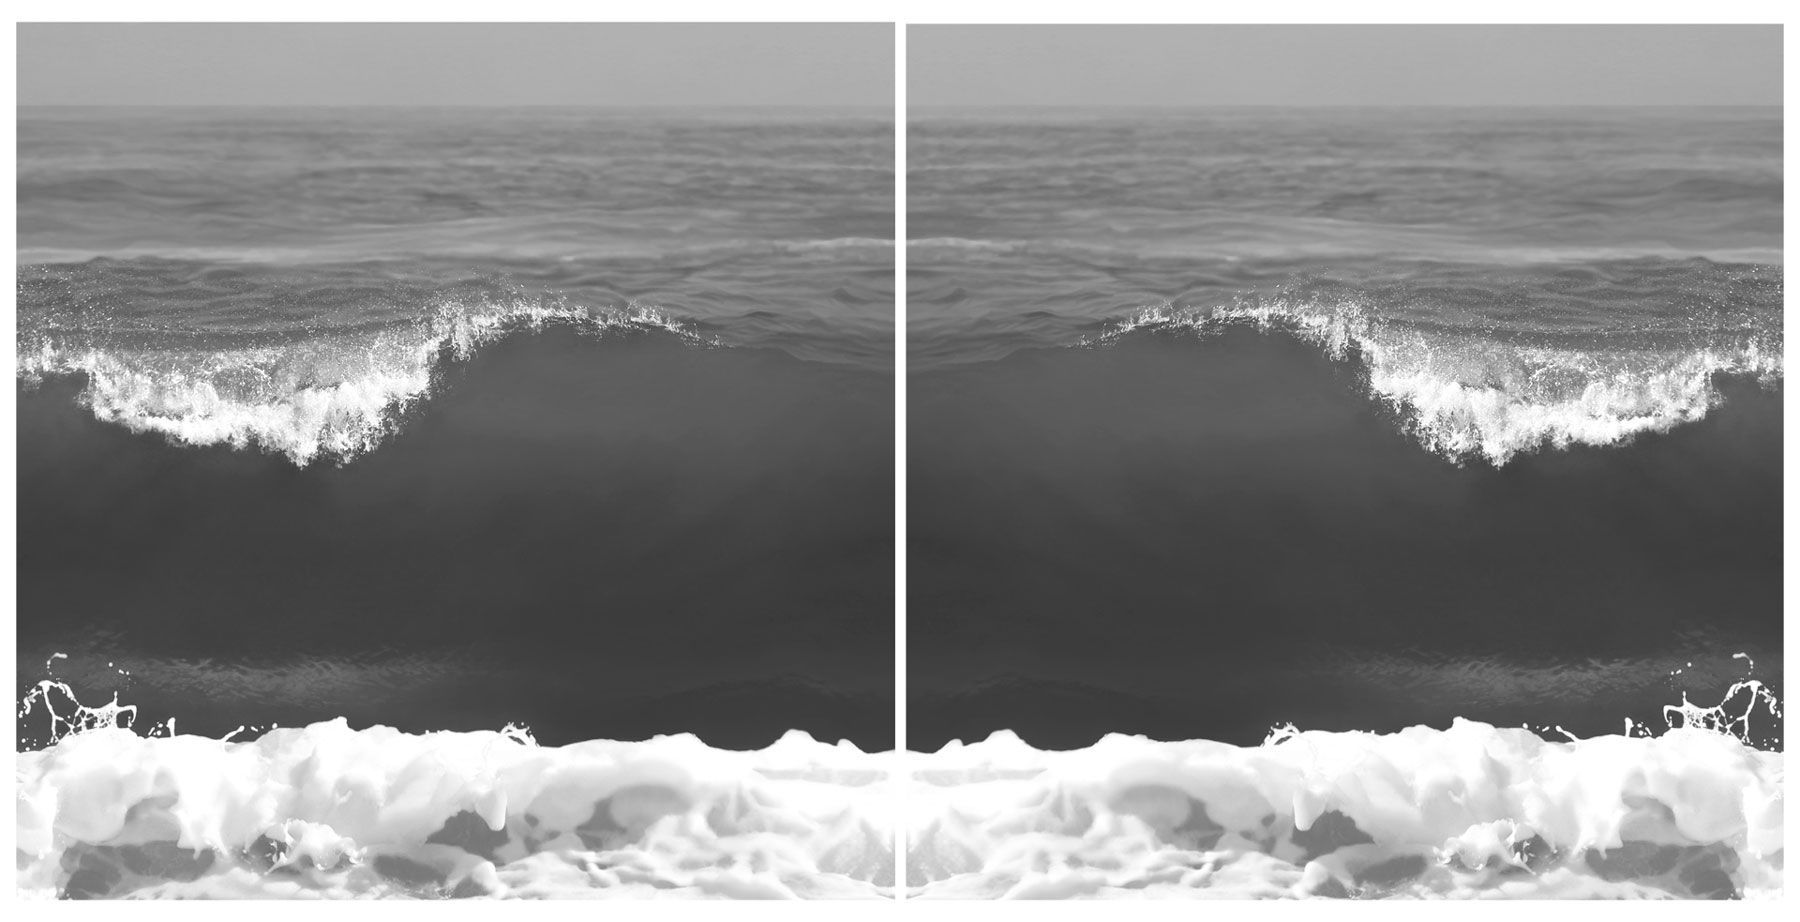 BW Crashing Waves 9781 (diptych)